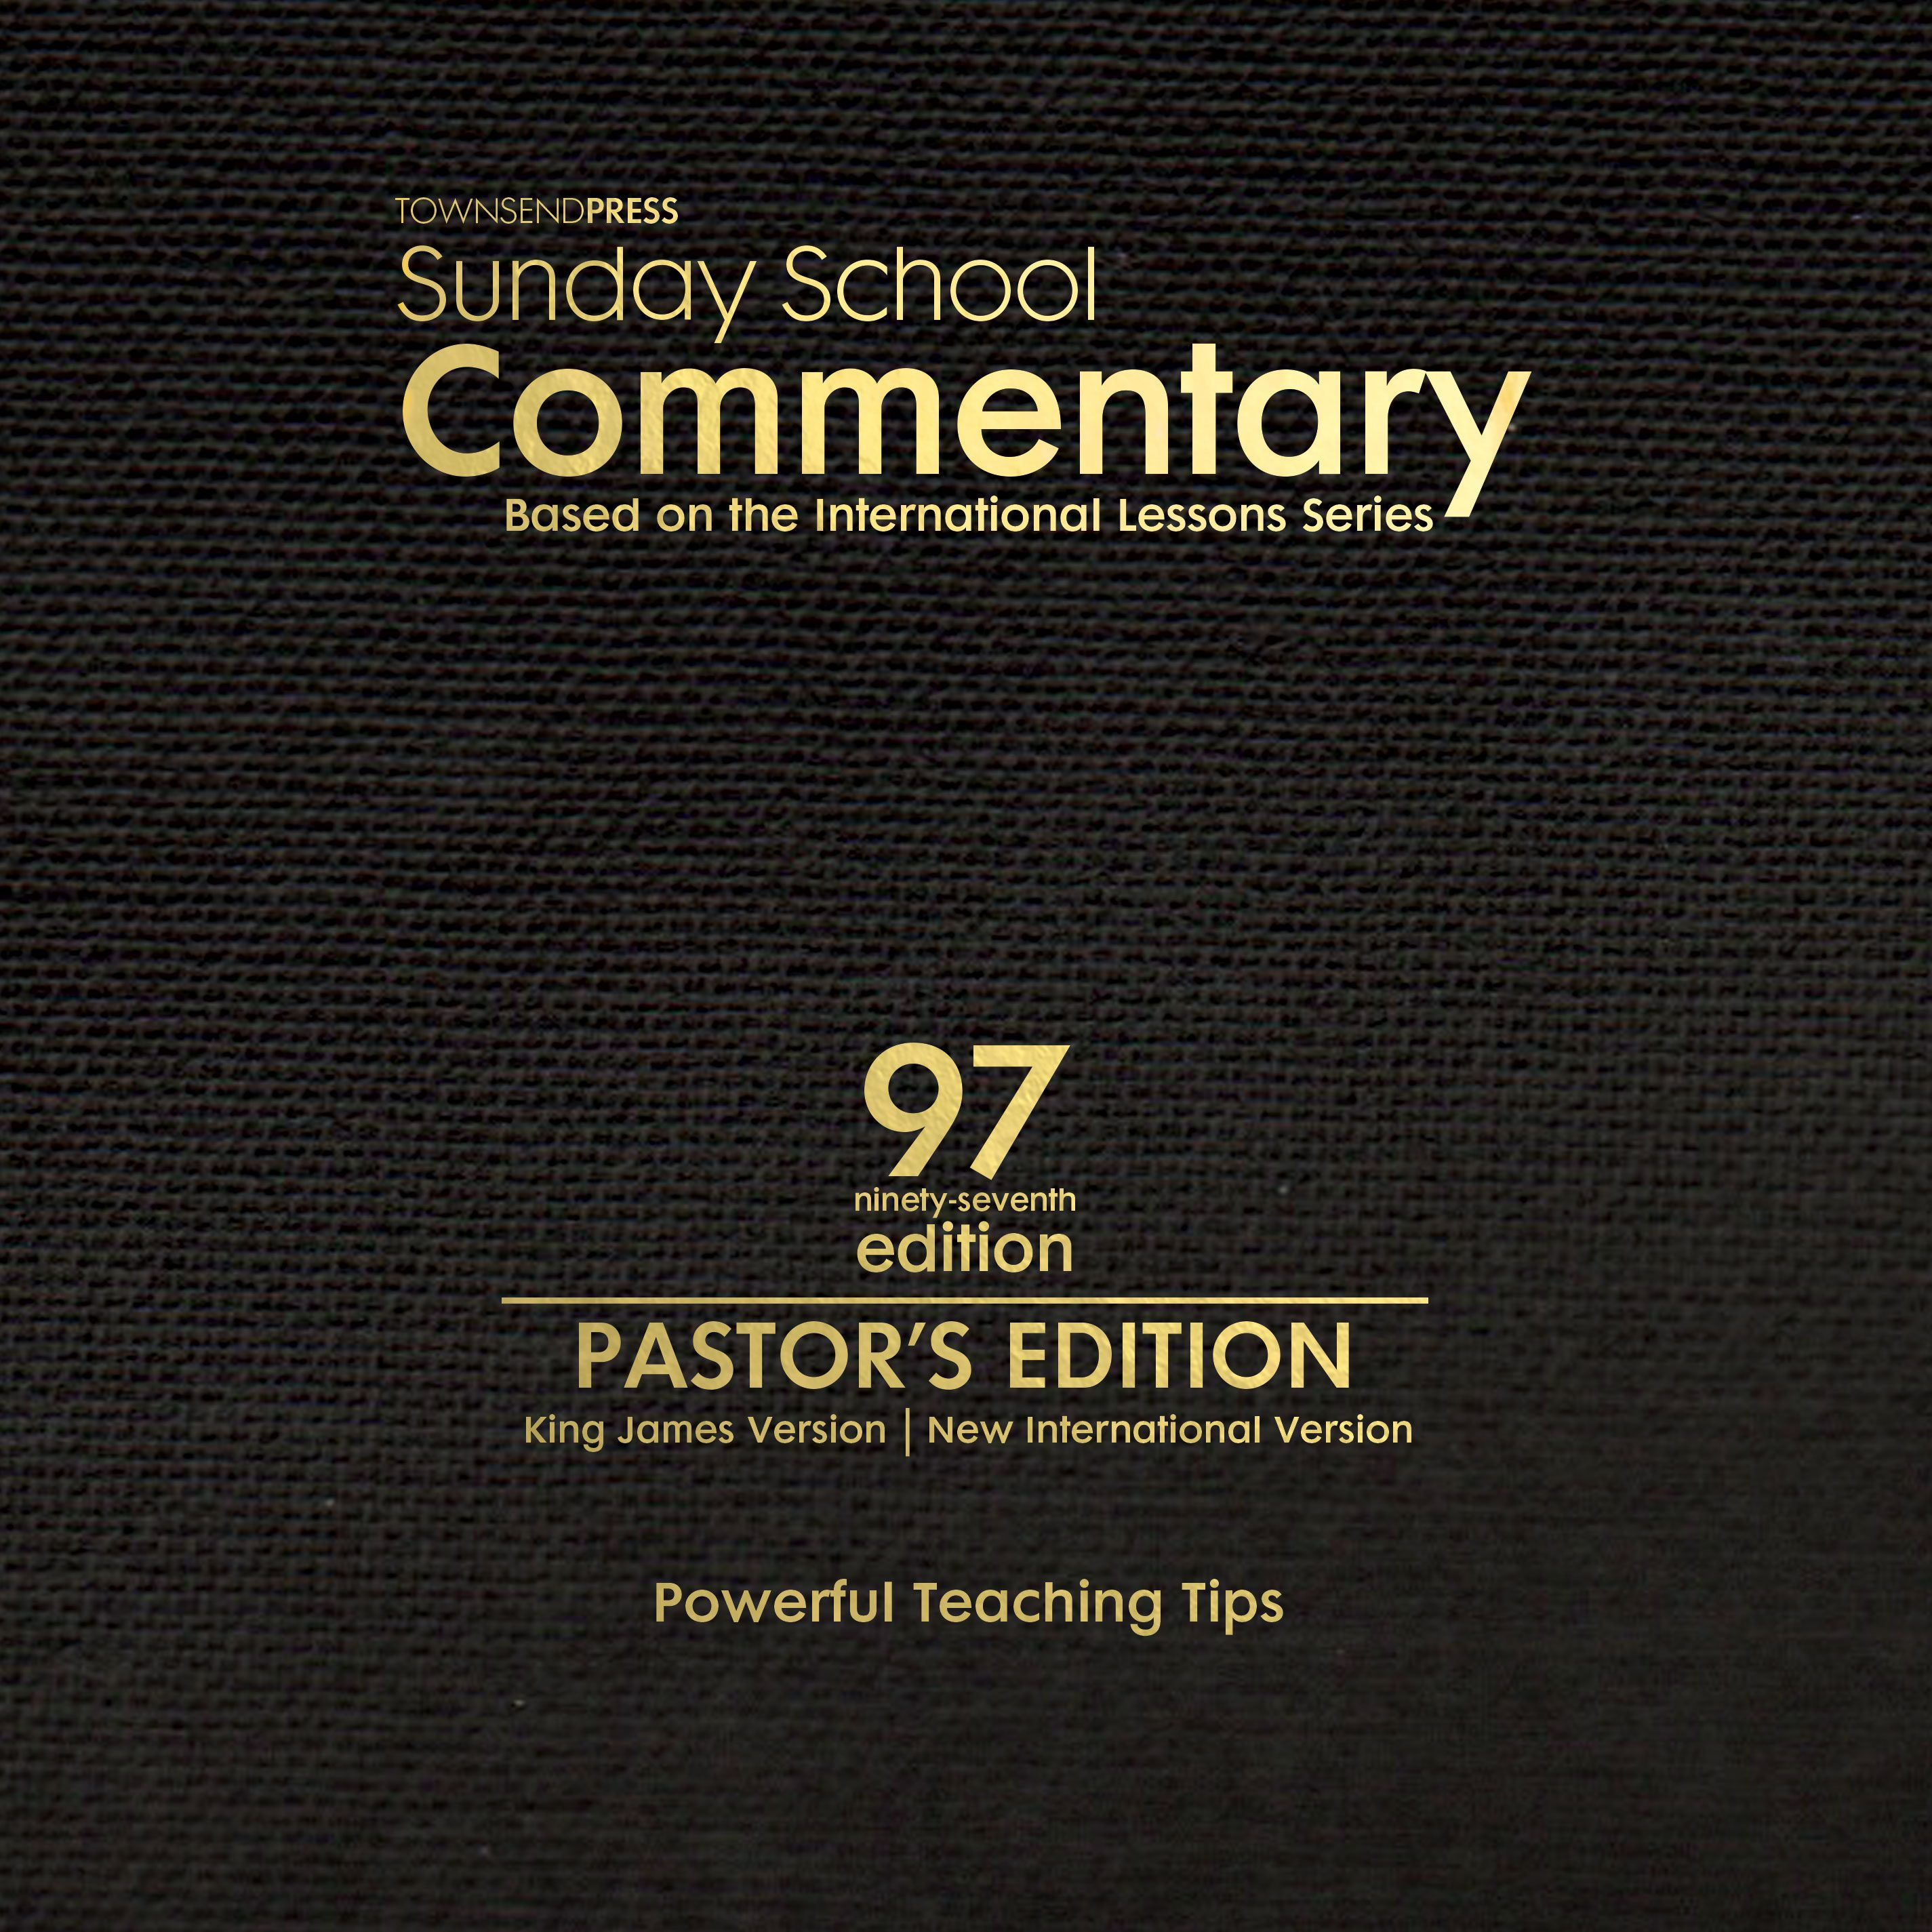 2017-2018 Townsend Press Sunday School Commentary Pastor's Edition